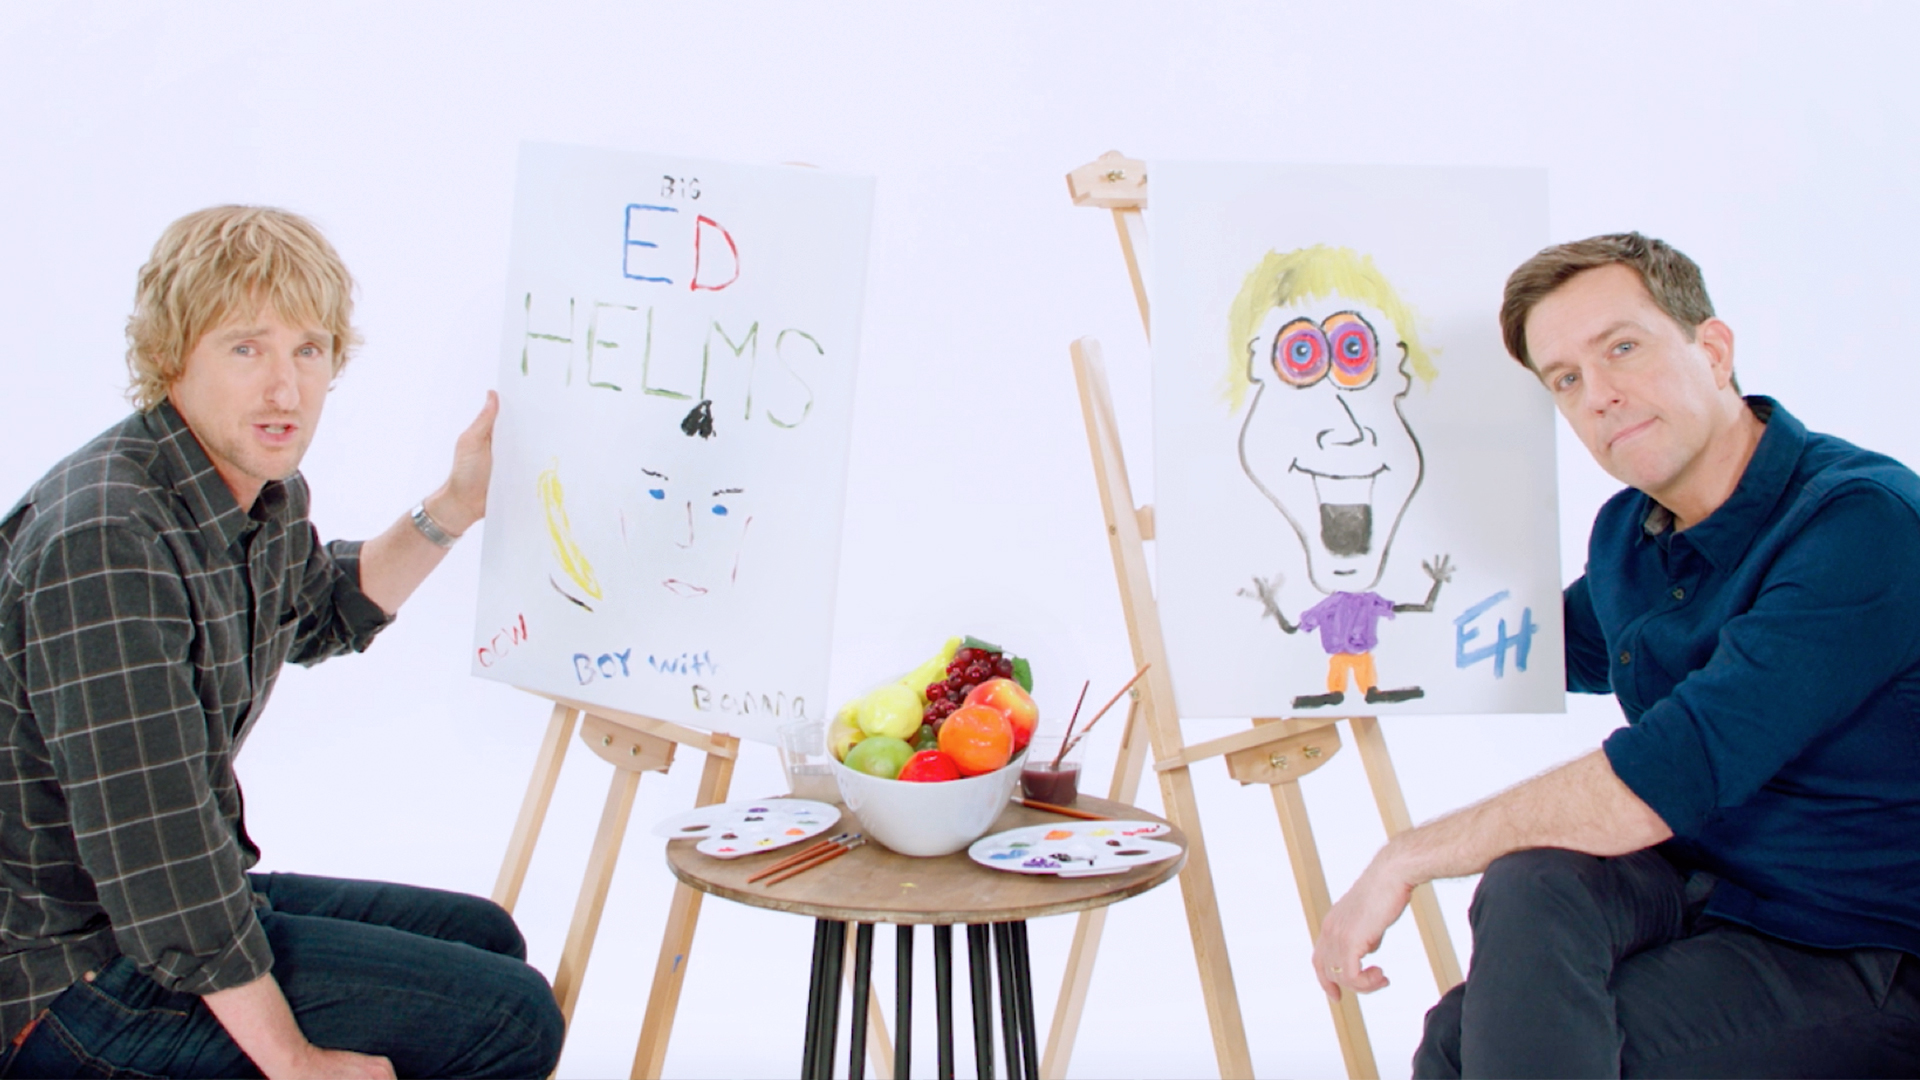 Owen Wilson And Ed Helms Paint Priceless Portraits Of Each Other